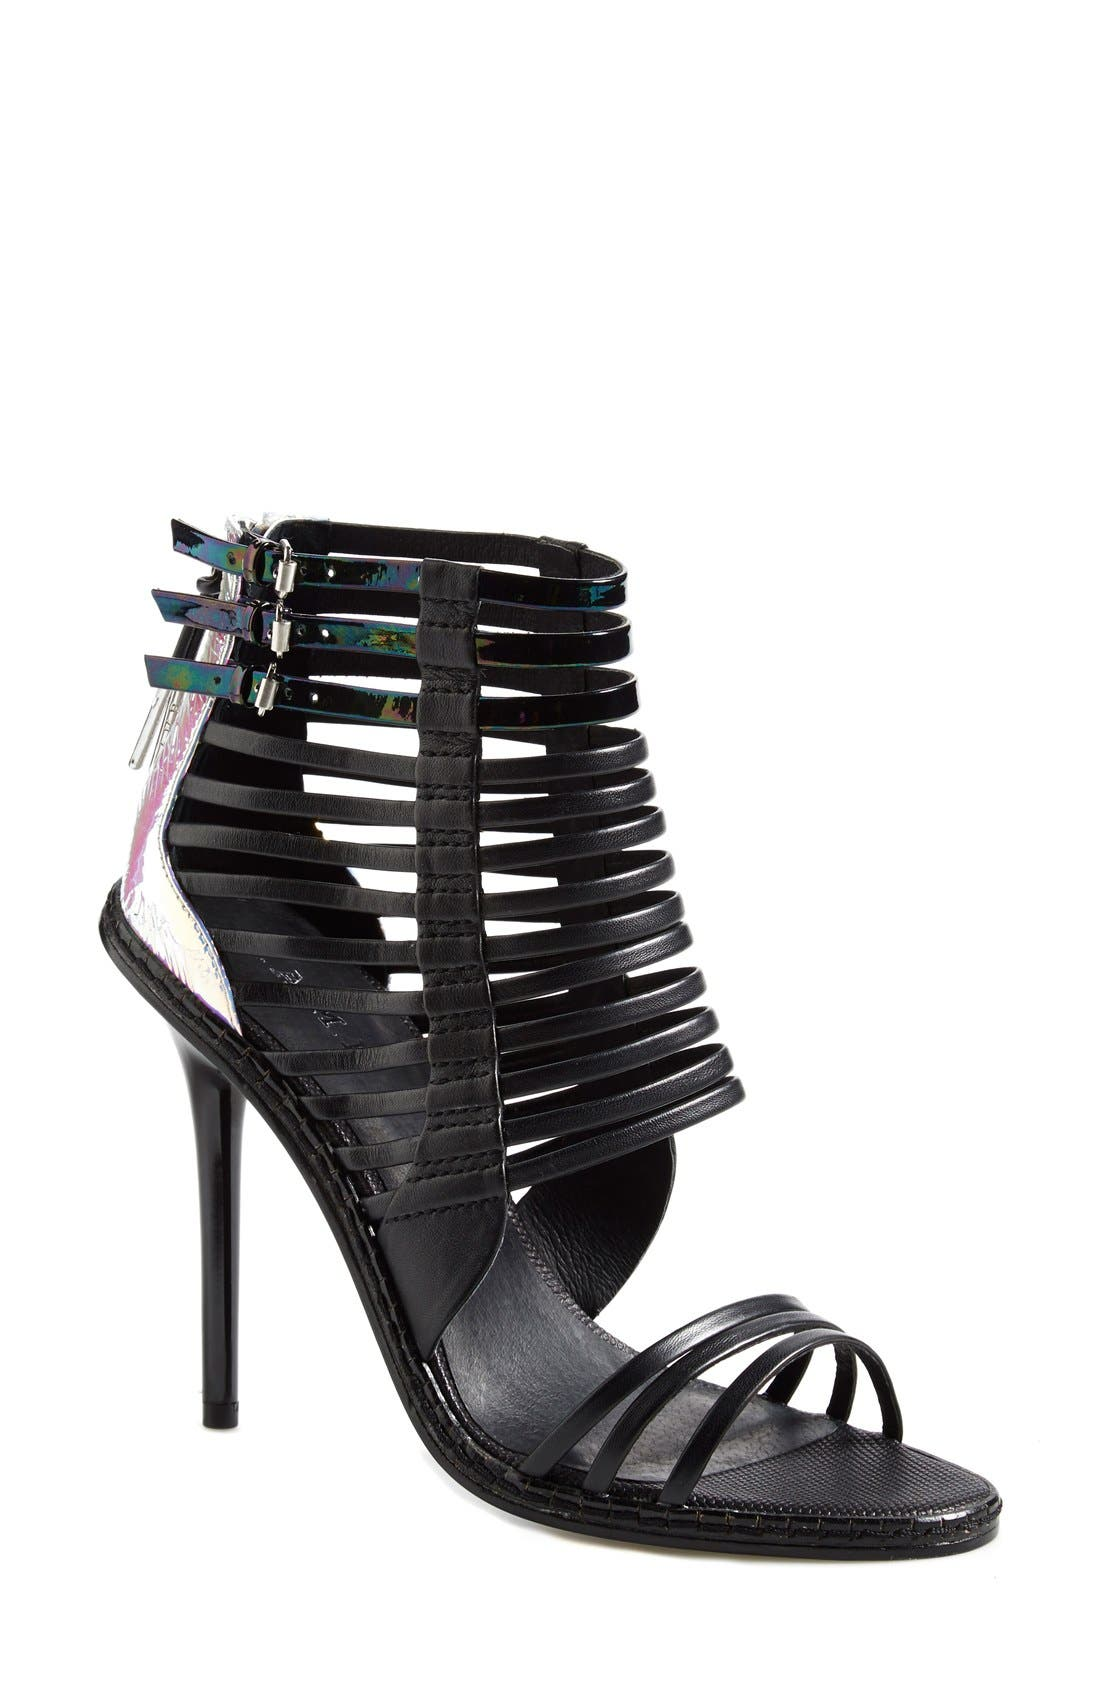 Alternate Image 1 Selected - L.A.M.B. 'Brook' Leather Sandal (Women)